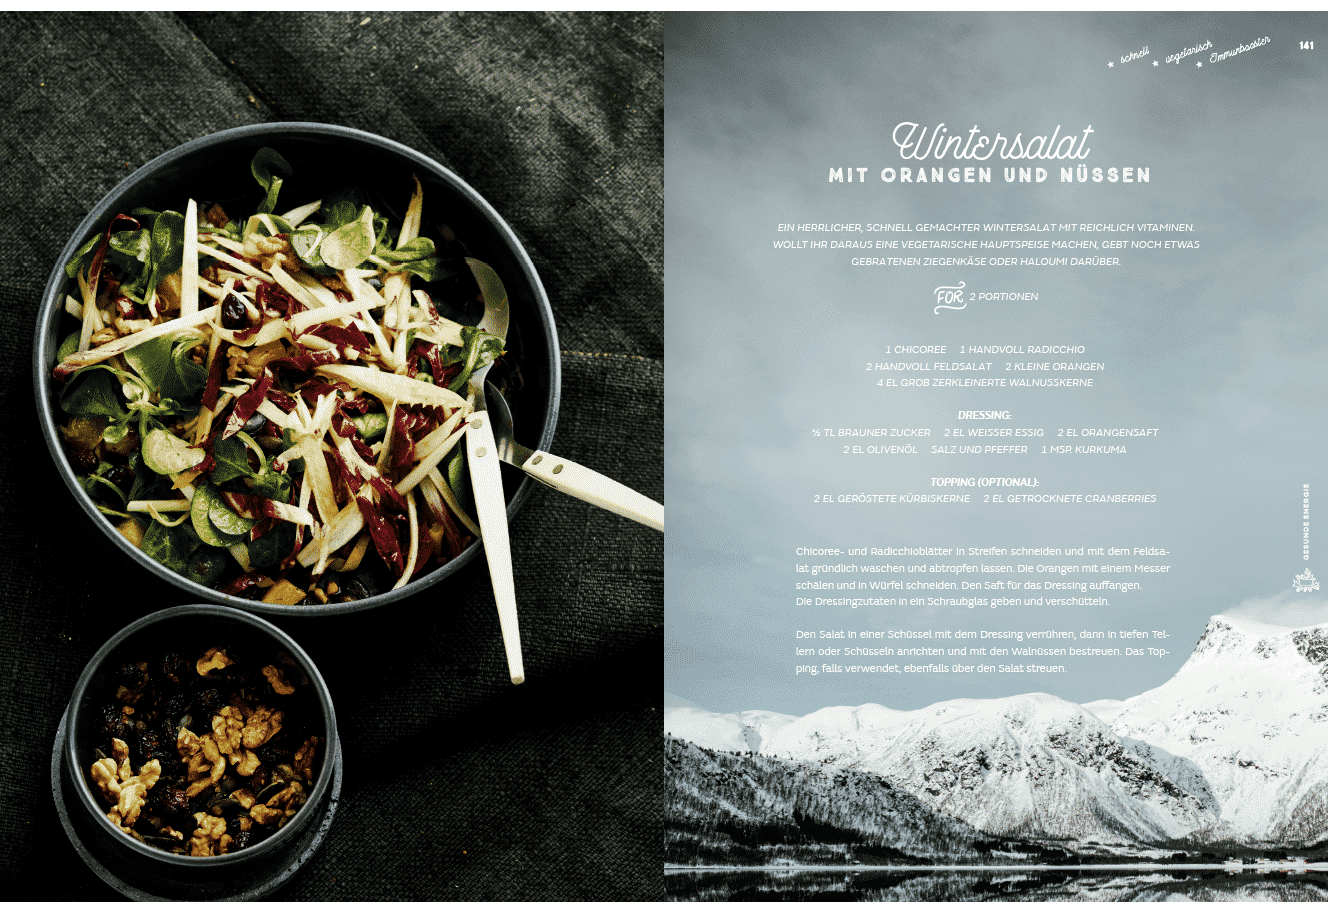 Wintersalat aus The Great Outdoors Winter Cooking